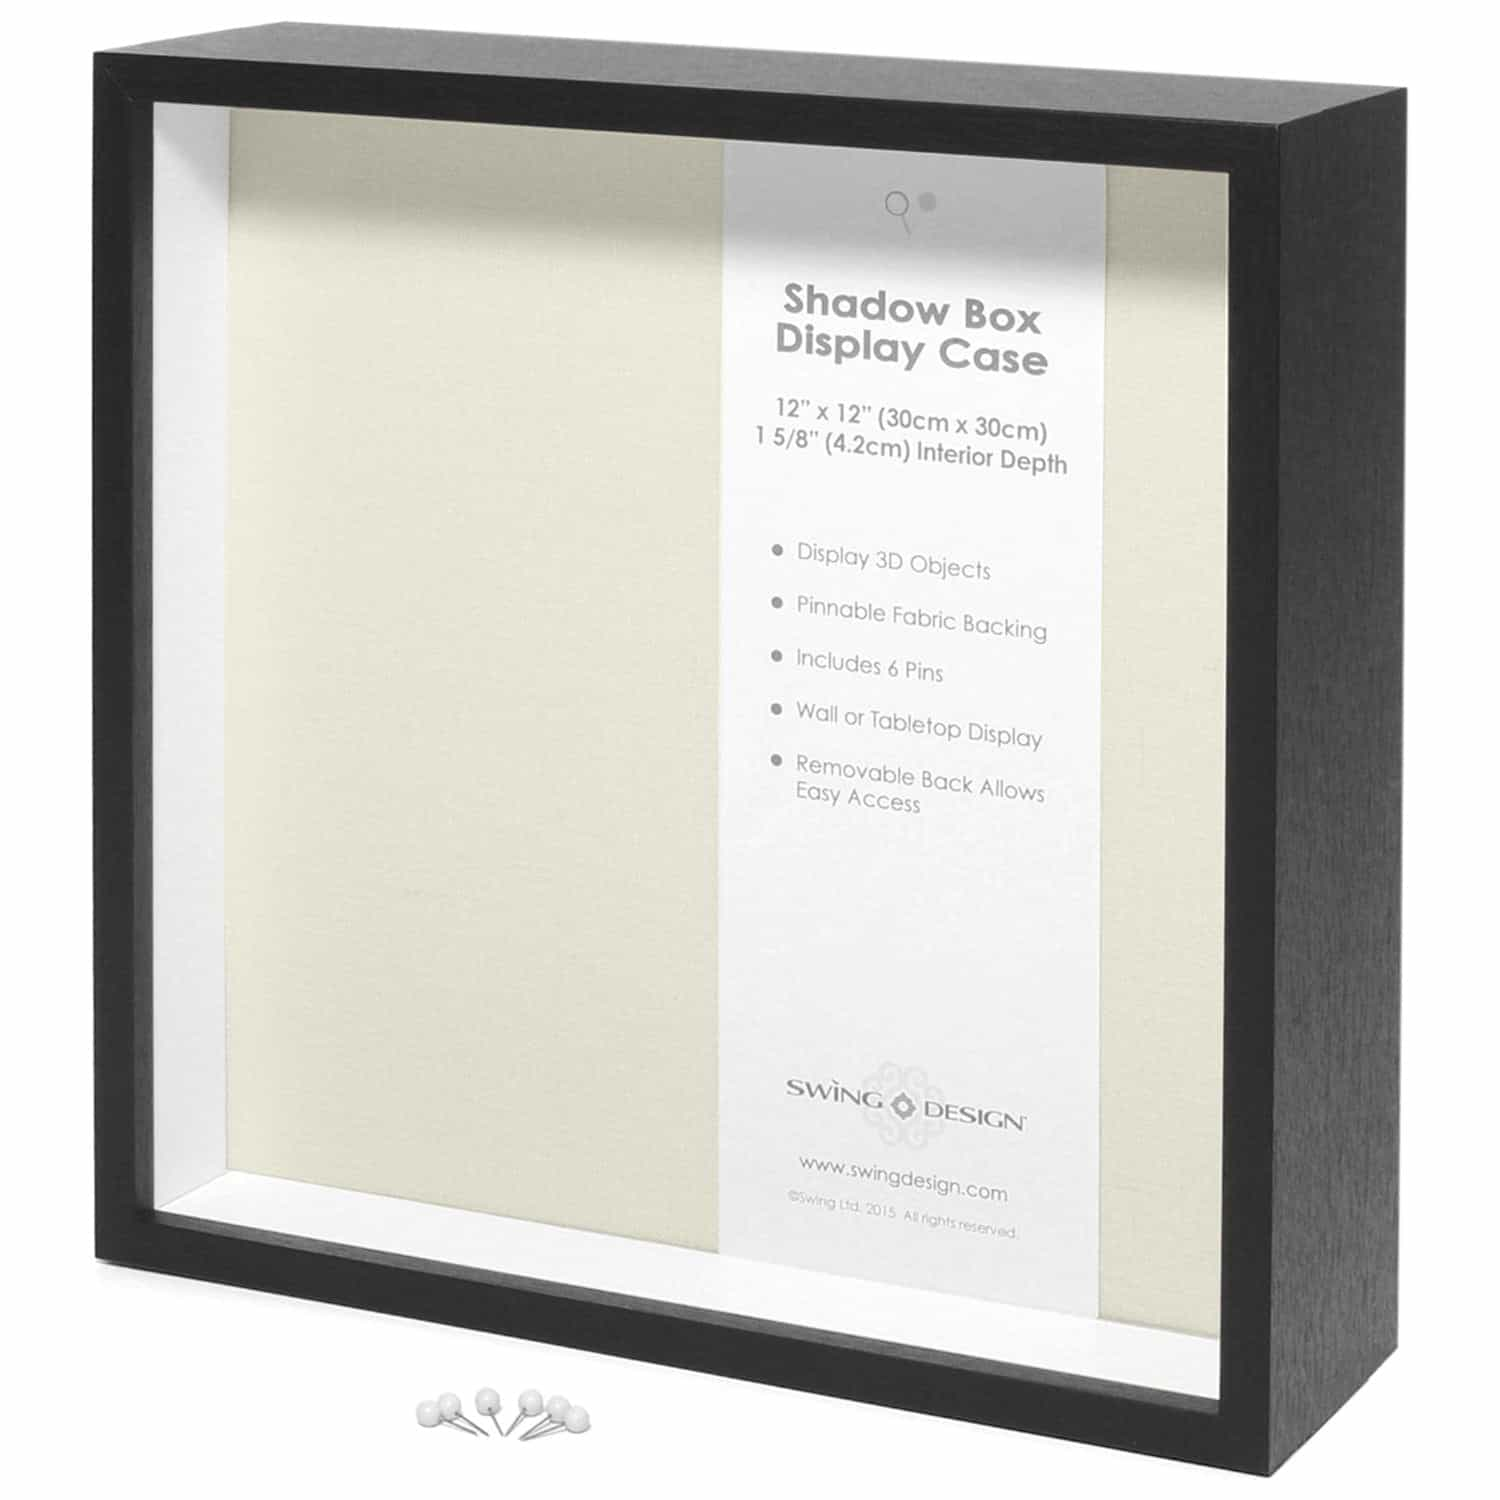 Awesome Crafting Blanks You Can Get on Amazon Prime : Shadow Box | www.thepinningmama.com